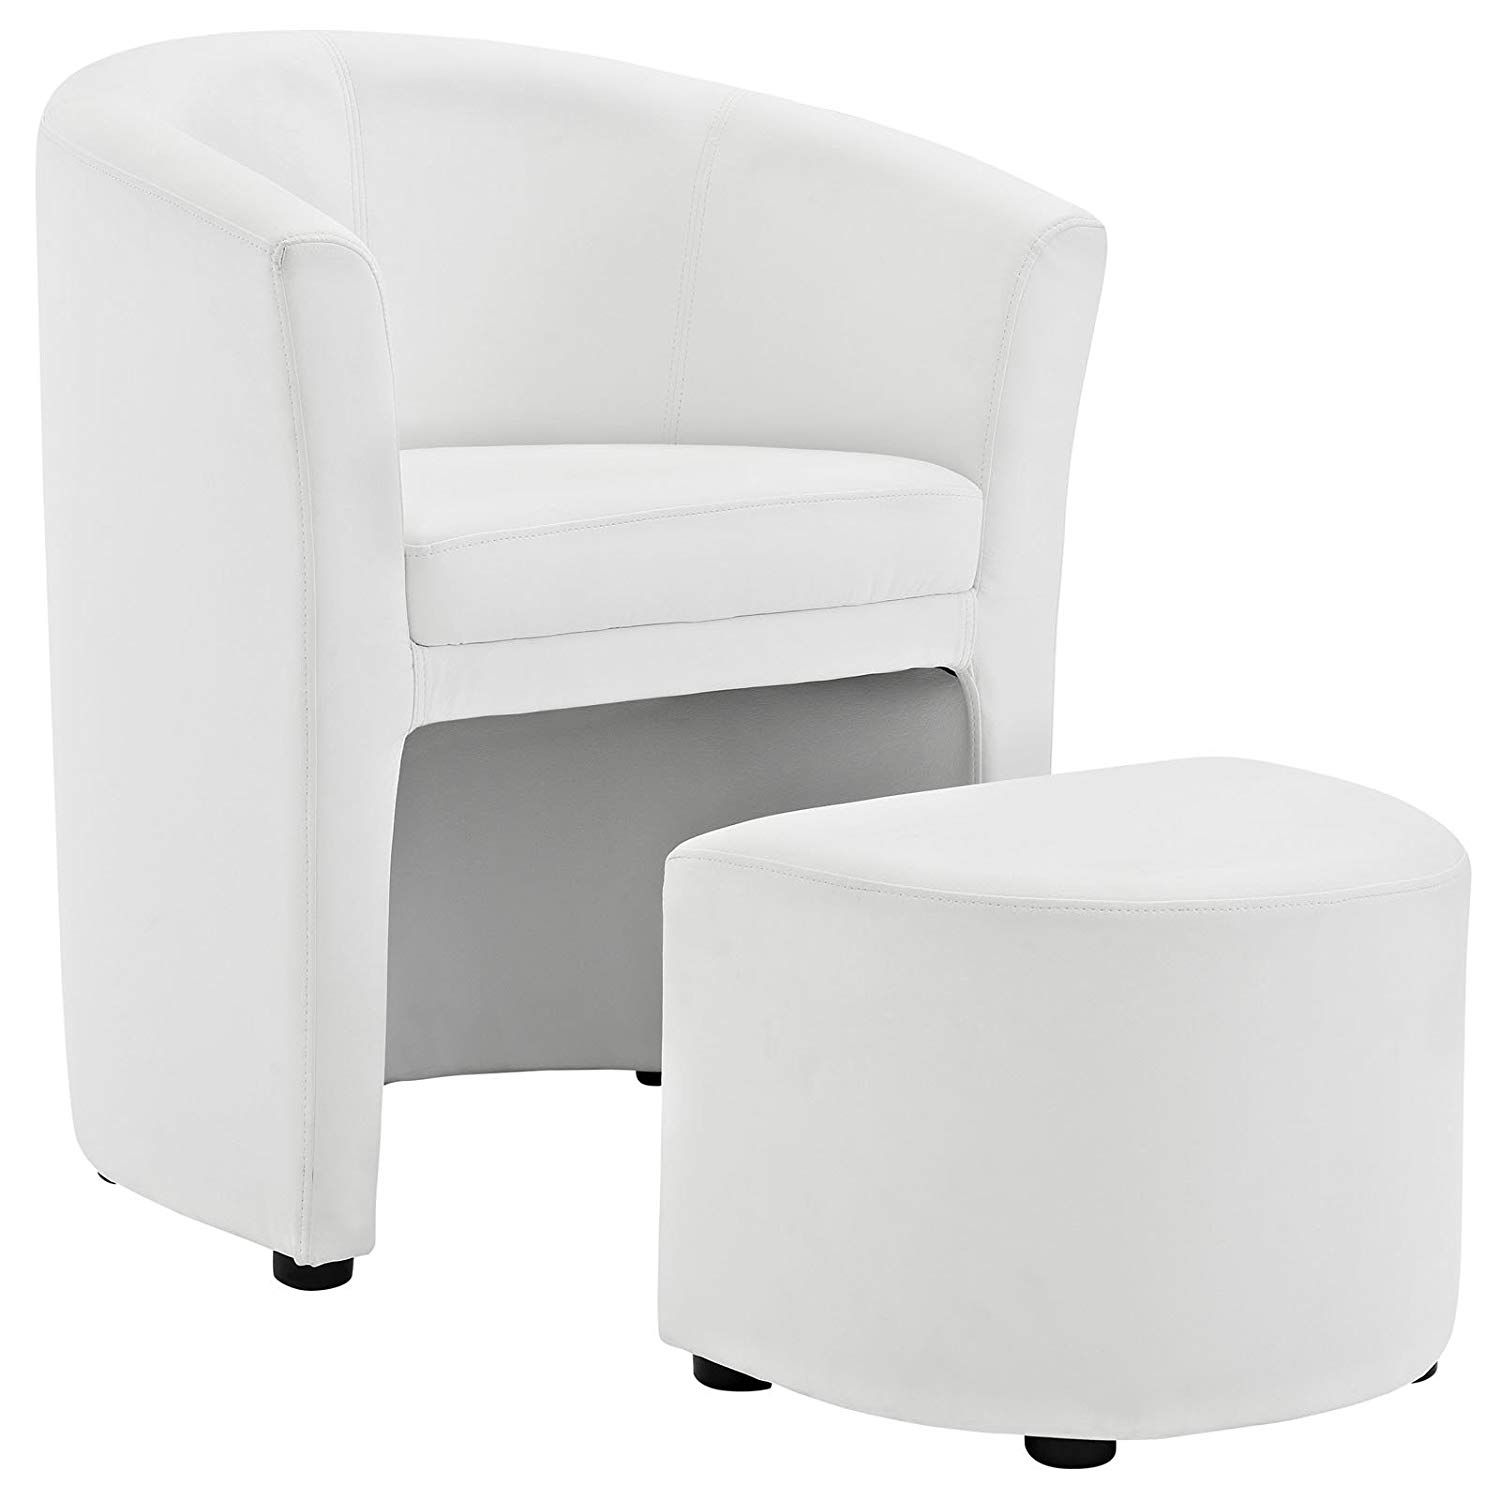 Armchair White With Images Chair And Ottoman Set